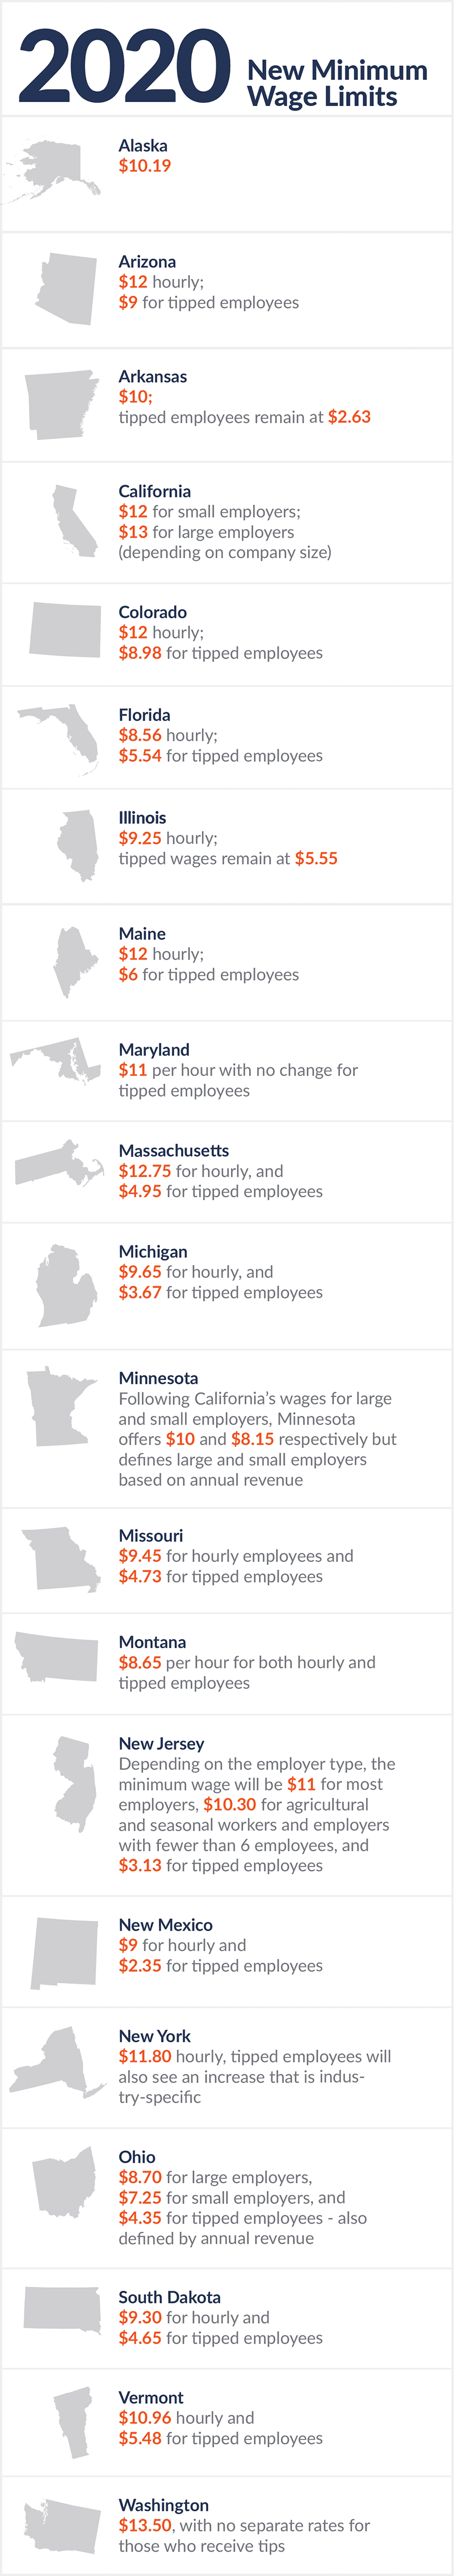 2020 Minimum Wage Limit by State